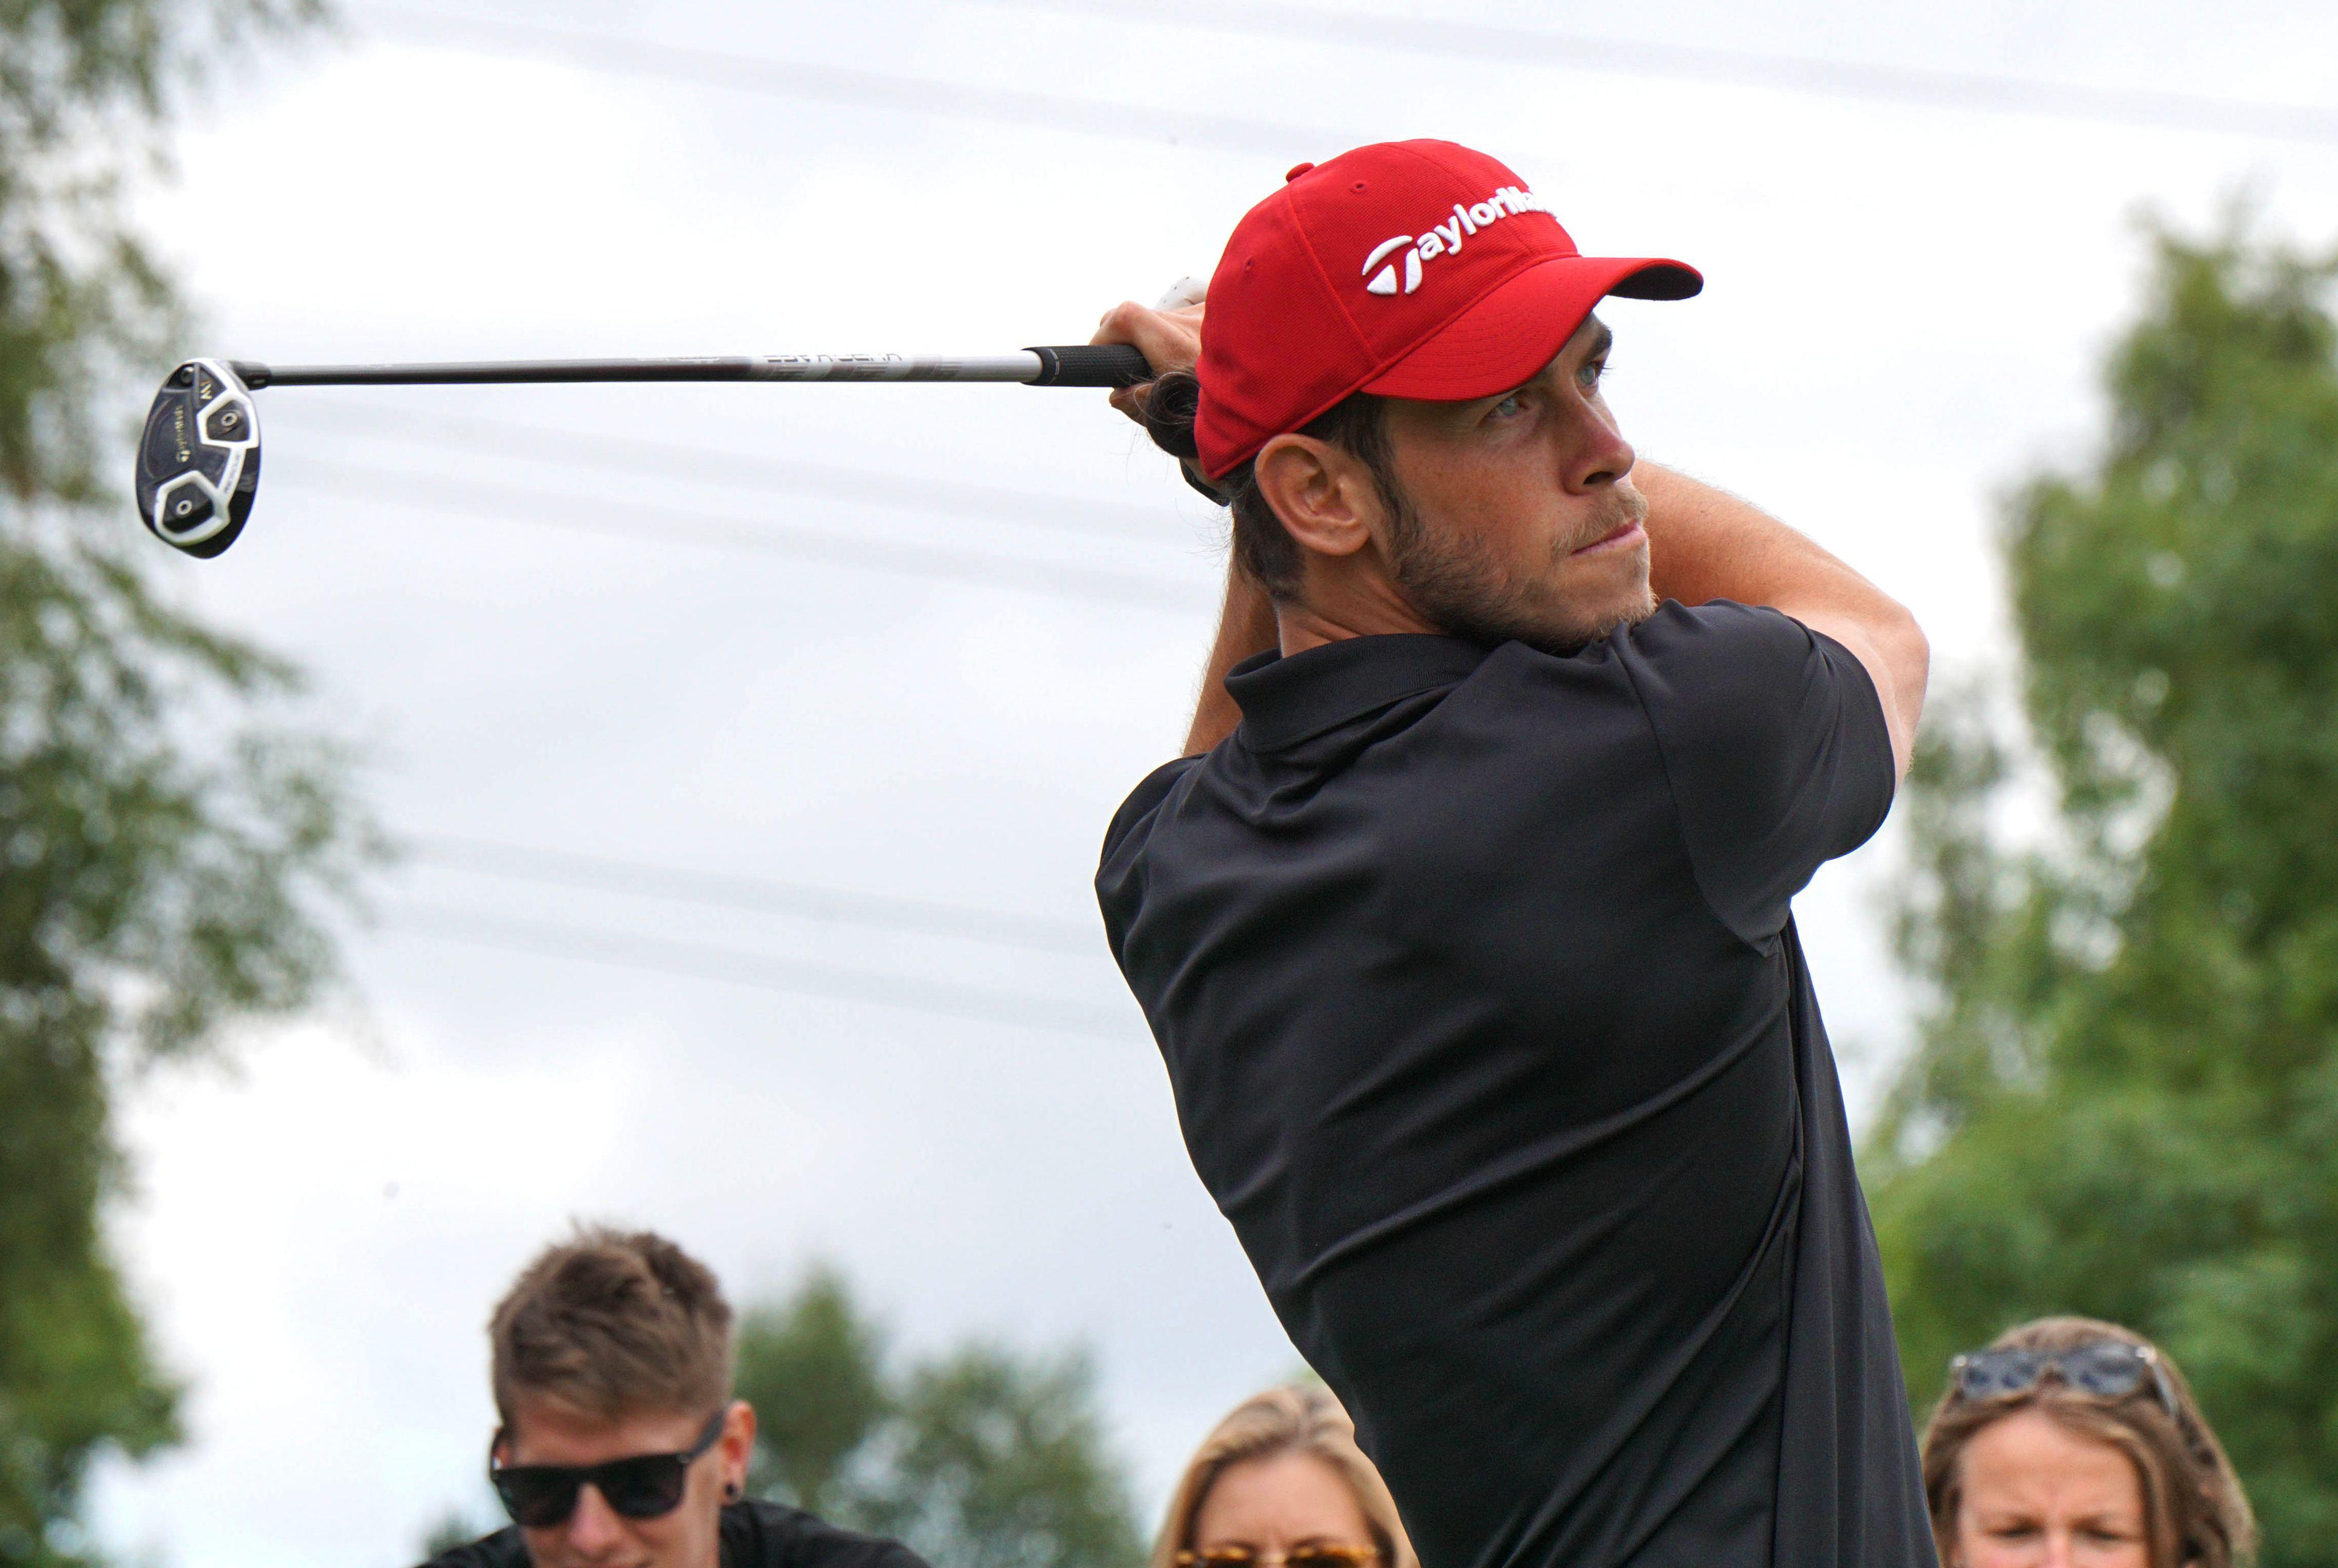 Gareth Bale is a huge fan of golf, but has taken this to another level